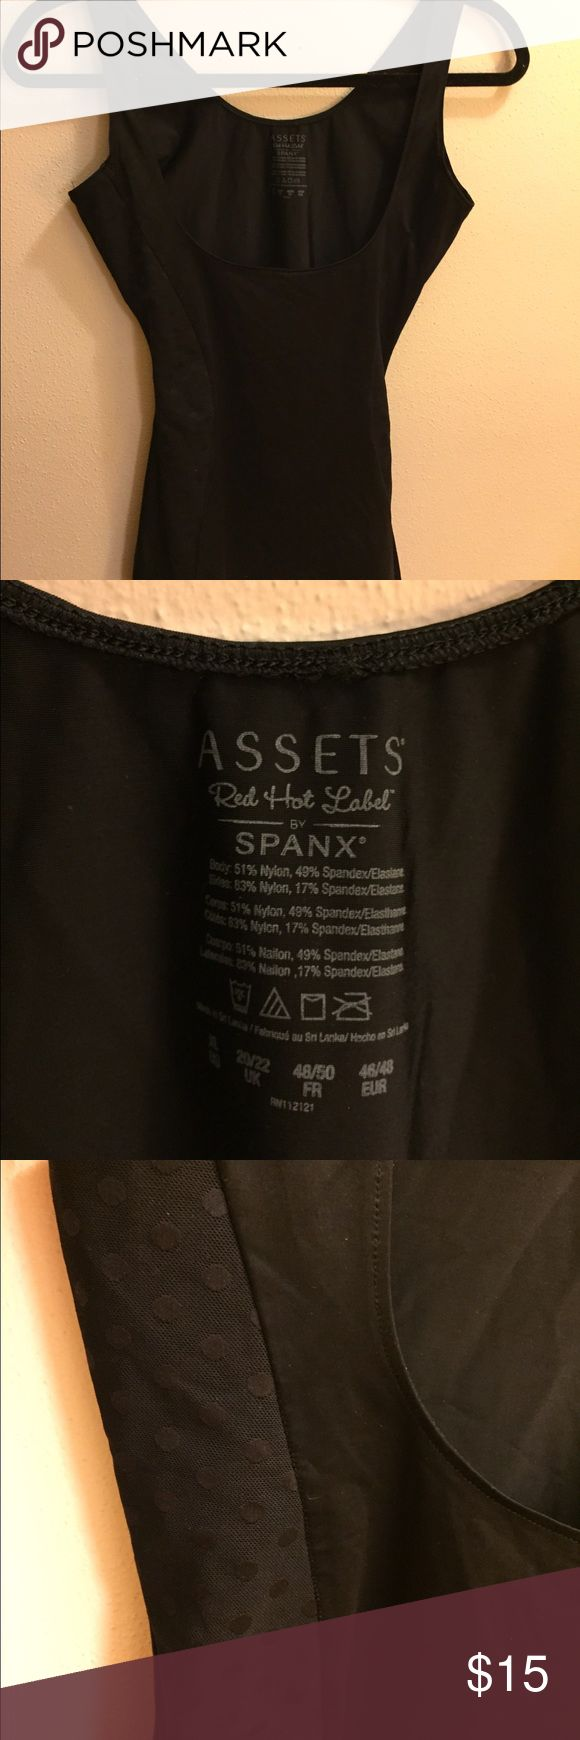 Assets by Spanx Red Hot Label open bust tank Assets by Spanx Red Hot Label open bust tank. Size large. Has adorable polka for detailing on the sides. In perfect condition. Comes from a smoke free home. SPANX Intimates & Sleepwear Shapewear